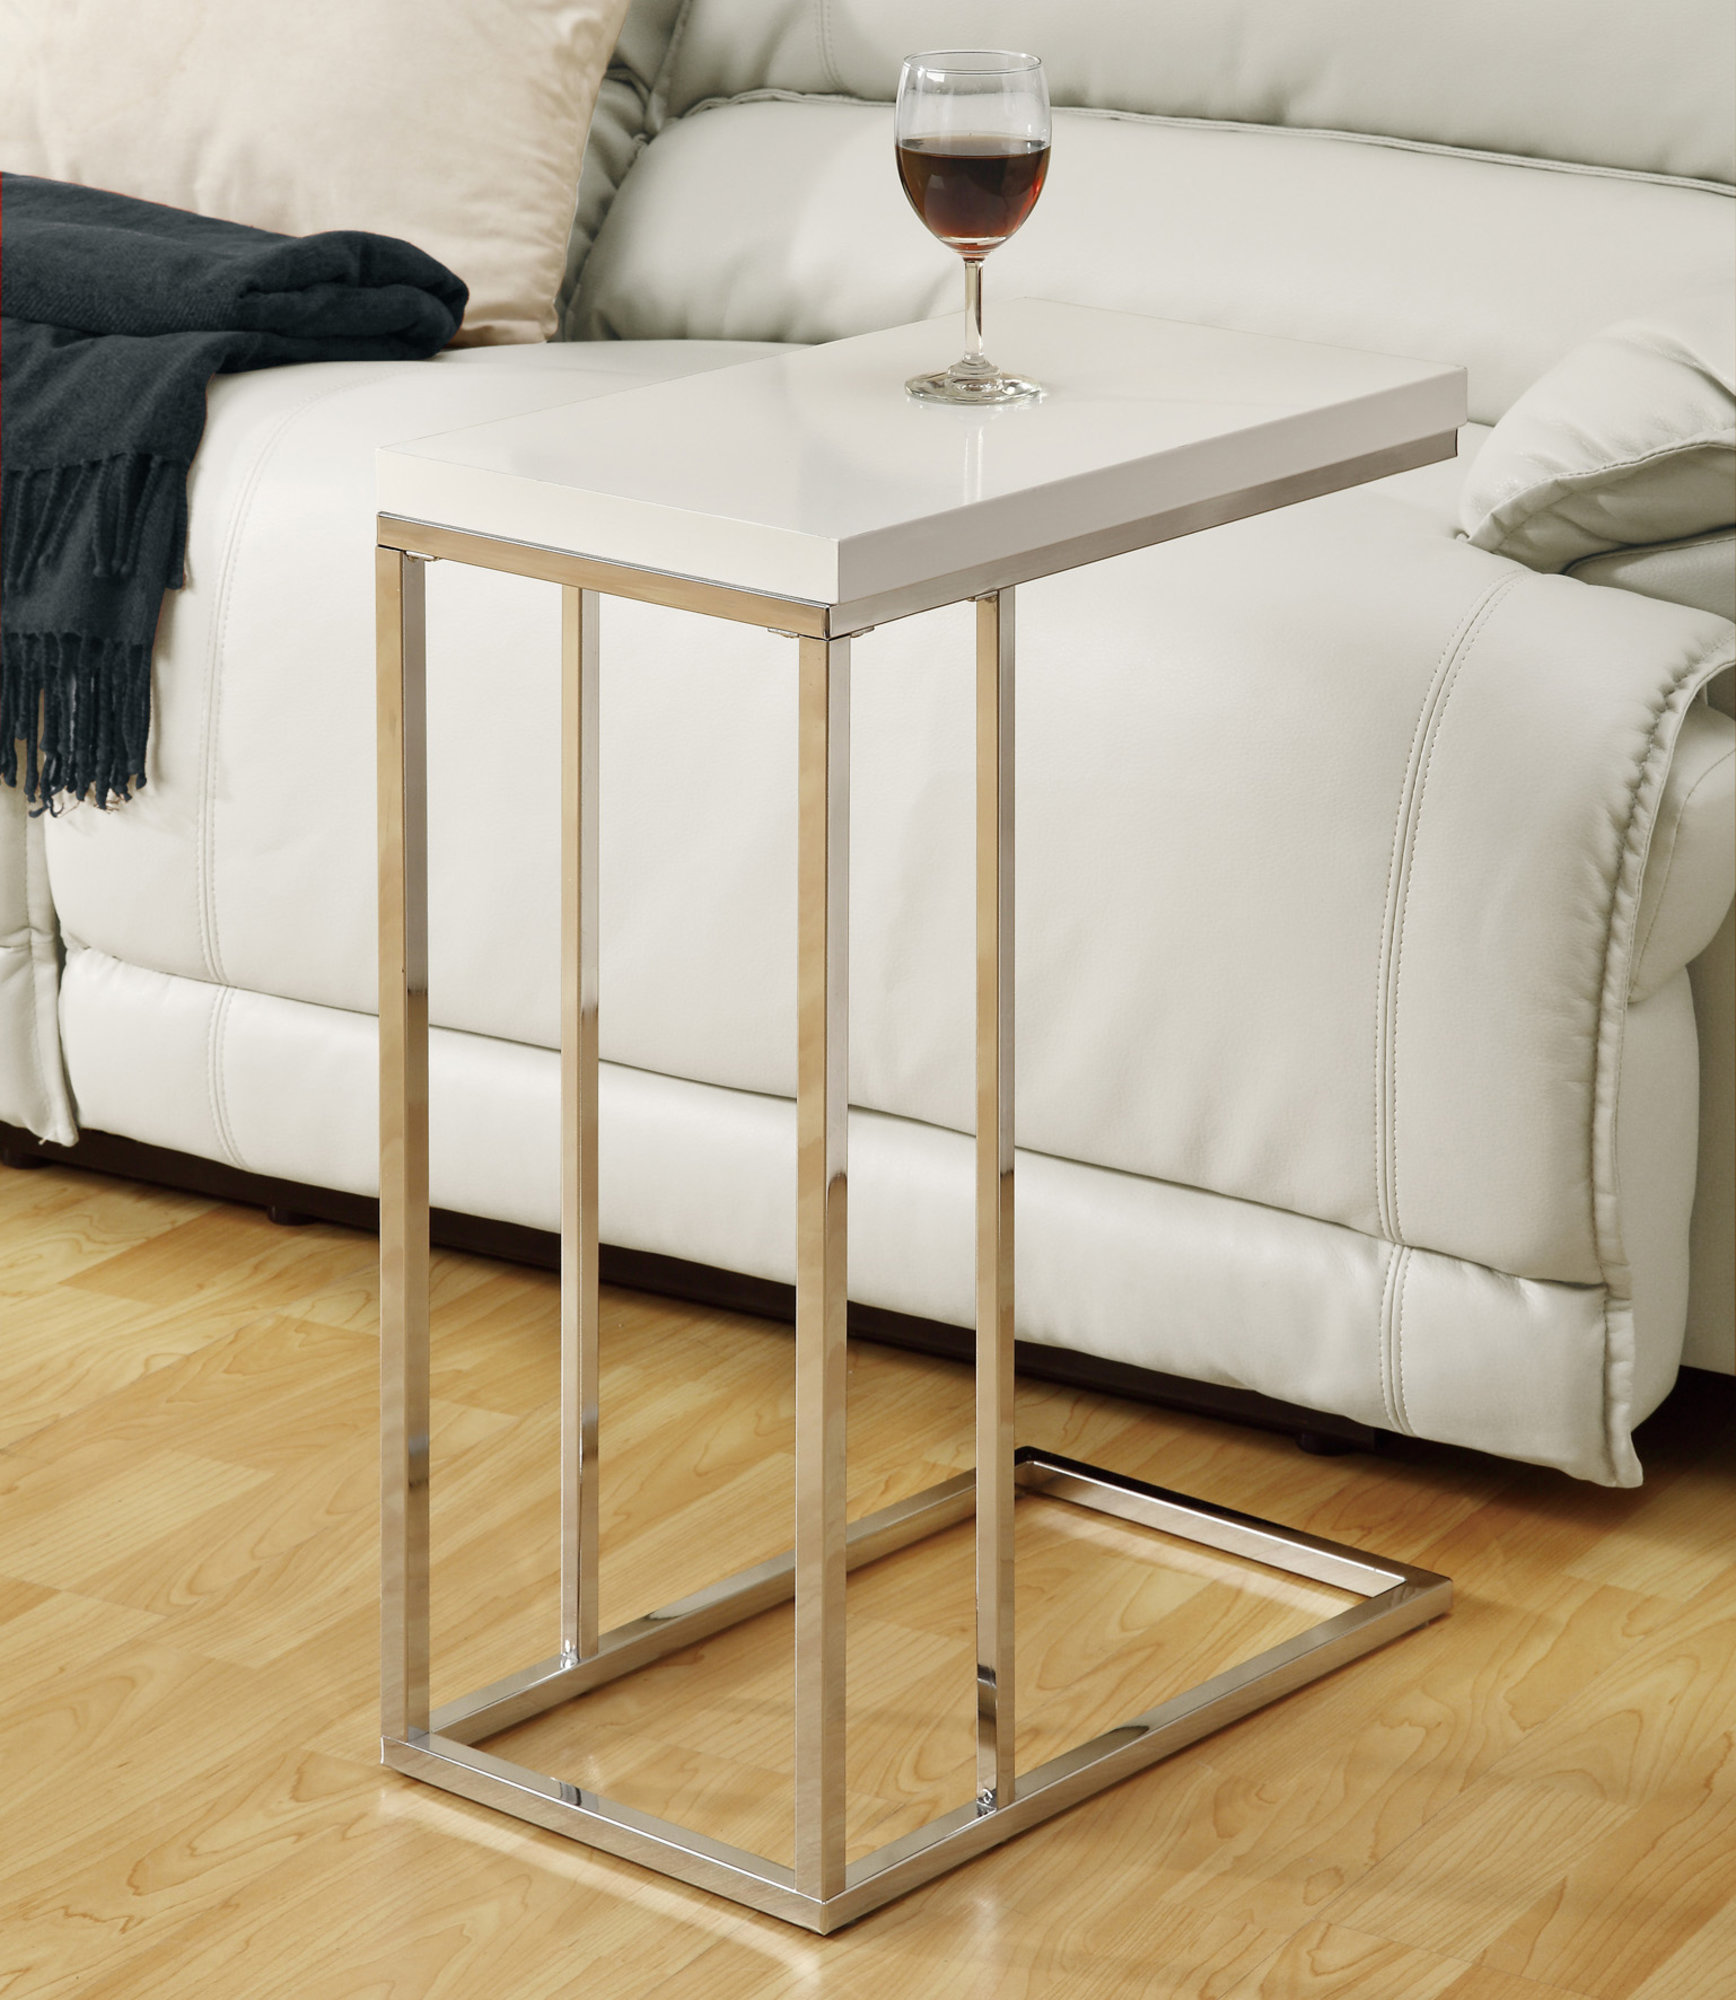 small end tables you love myrtlewood table patchen accent quickview ashley furniture mattress teal bedroom chair glass for side foyer bench under couch ikea childrens kitchen